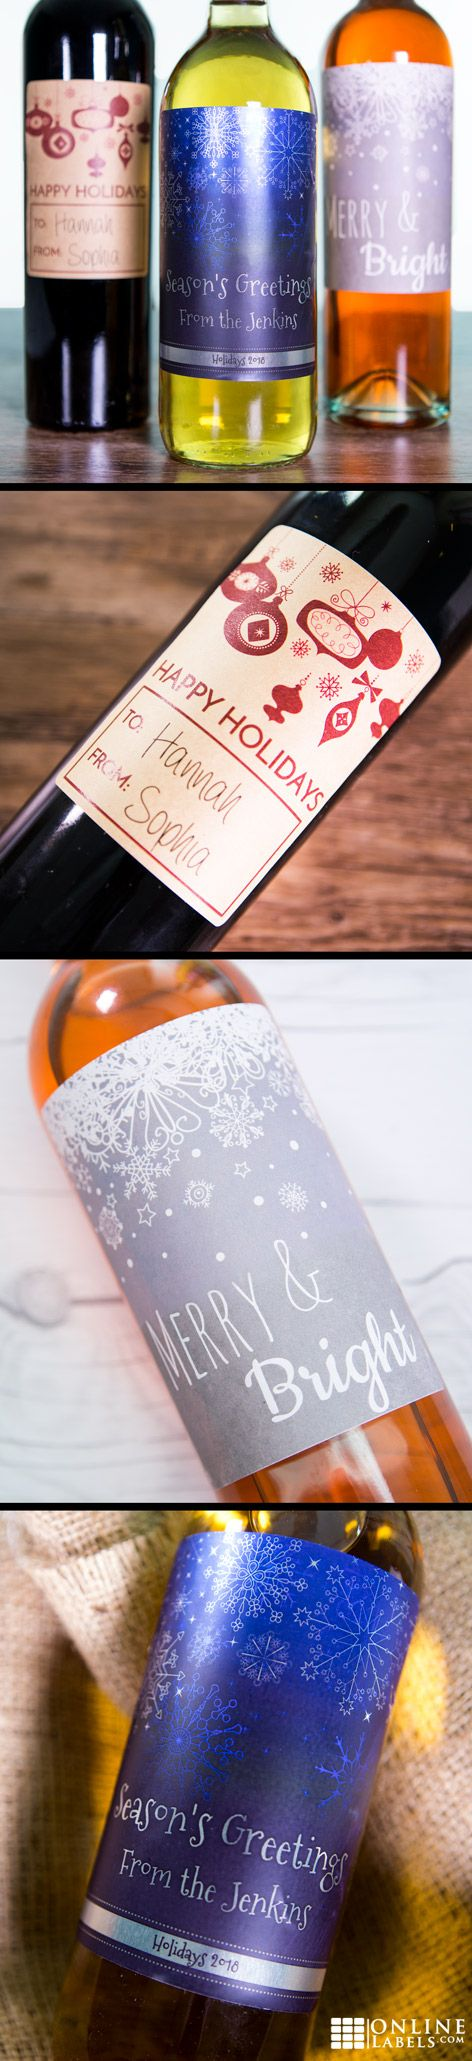 Create your own wine bottle labels using our editable pre-designed templates this holiday season!